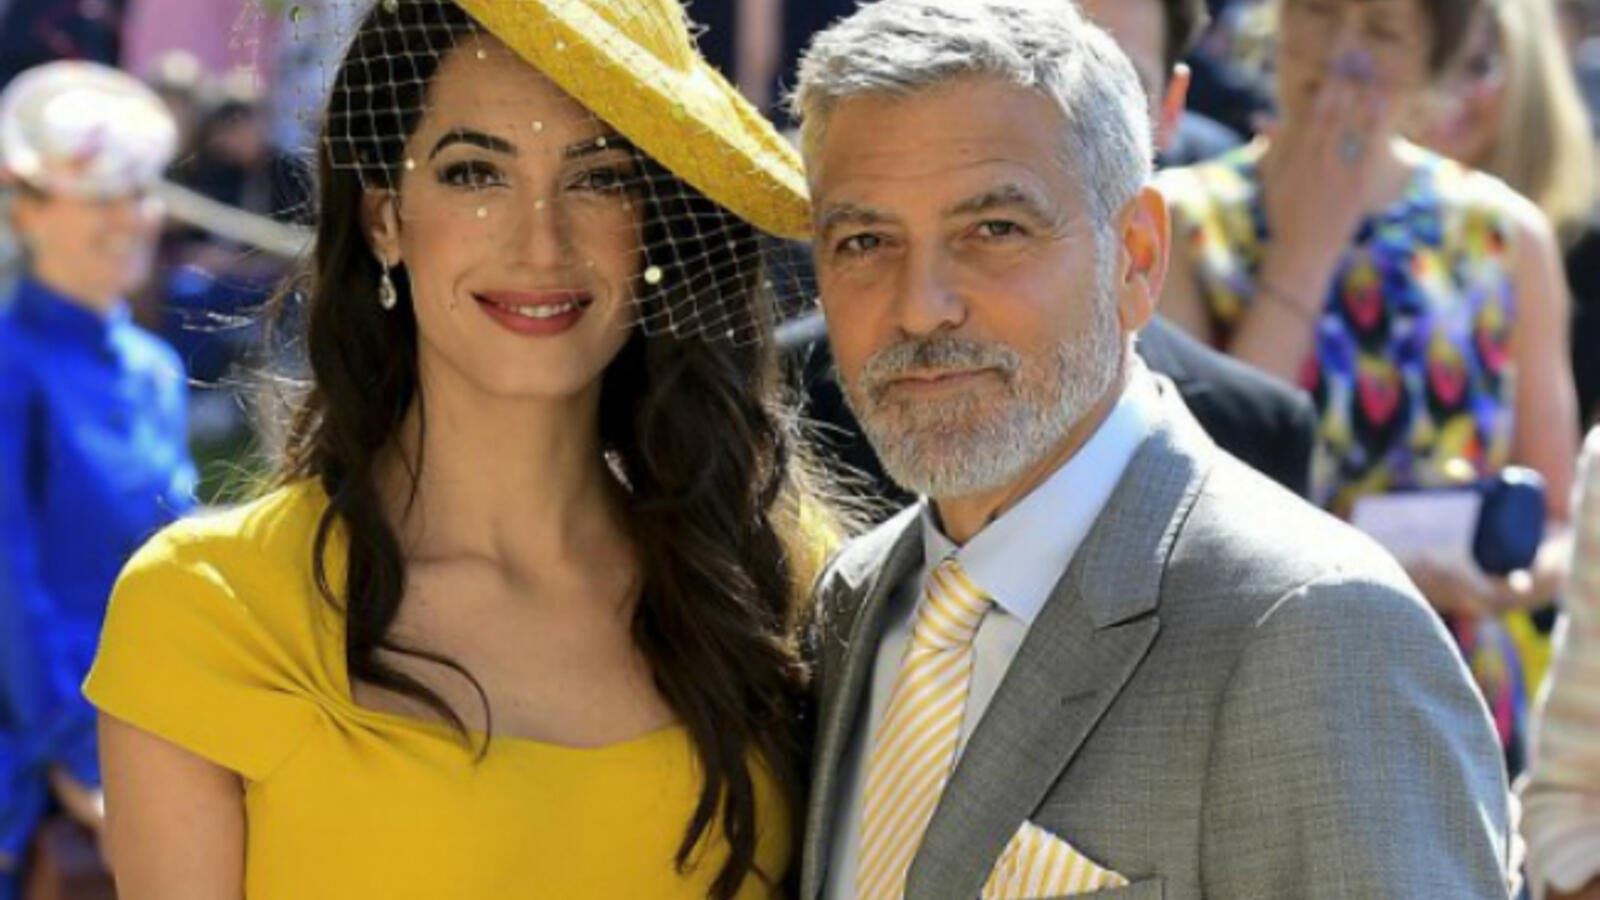 Amal Clooney Royal Wedding.This Is What Amal Alamuddin And Husband George Clooney Did At The